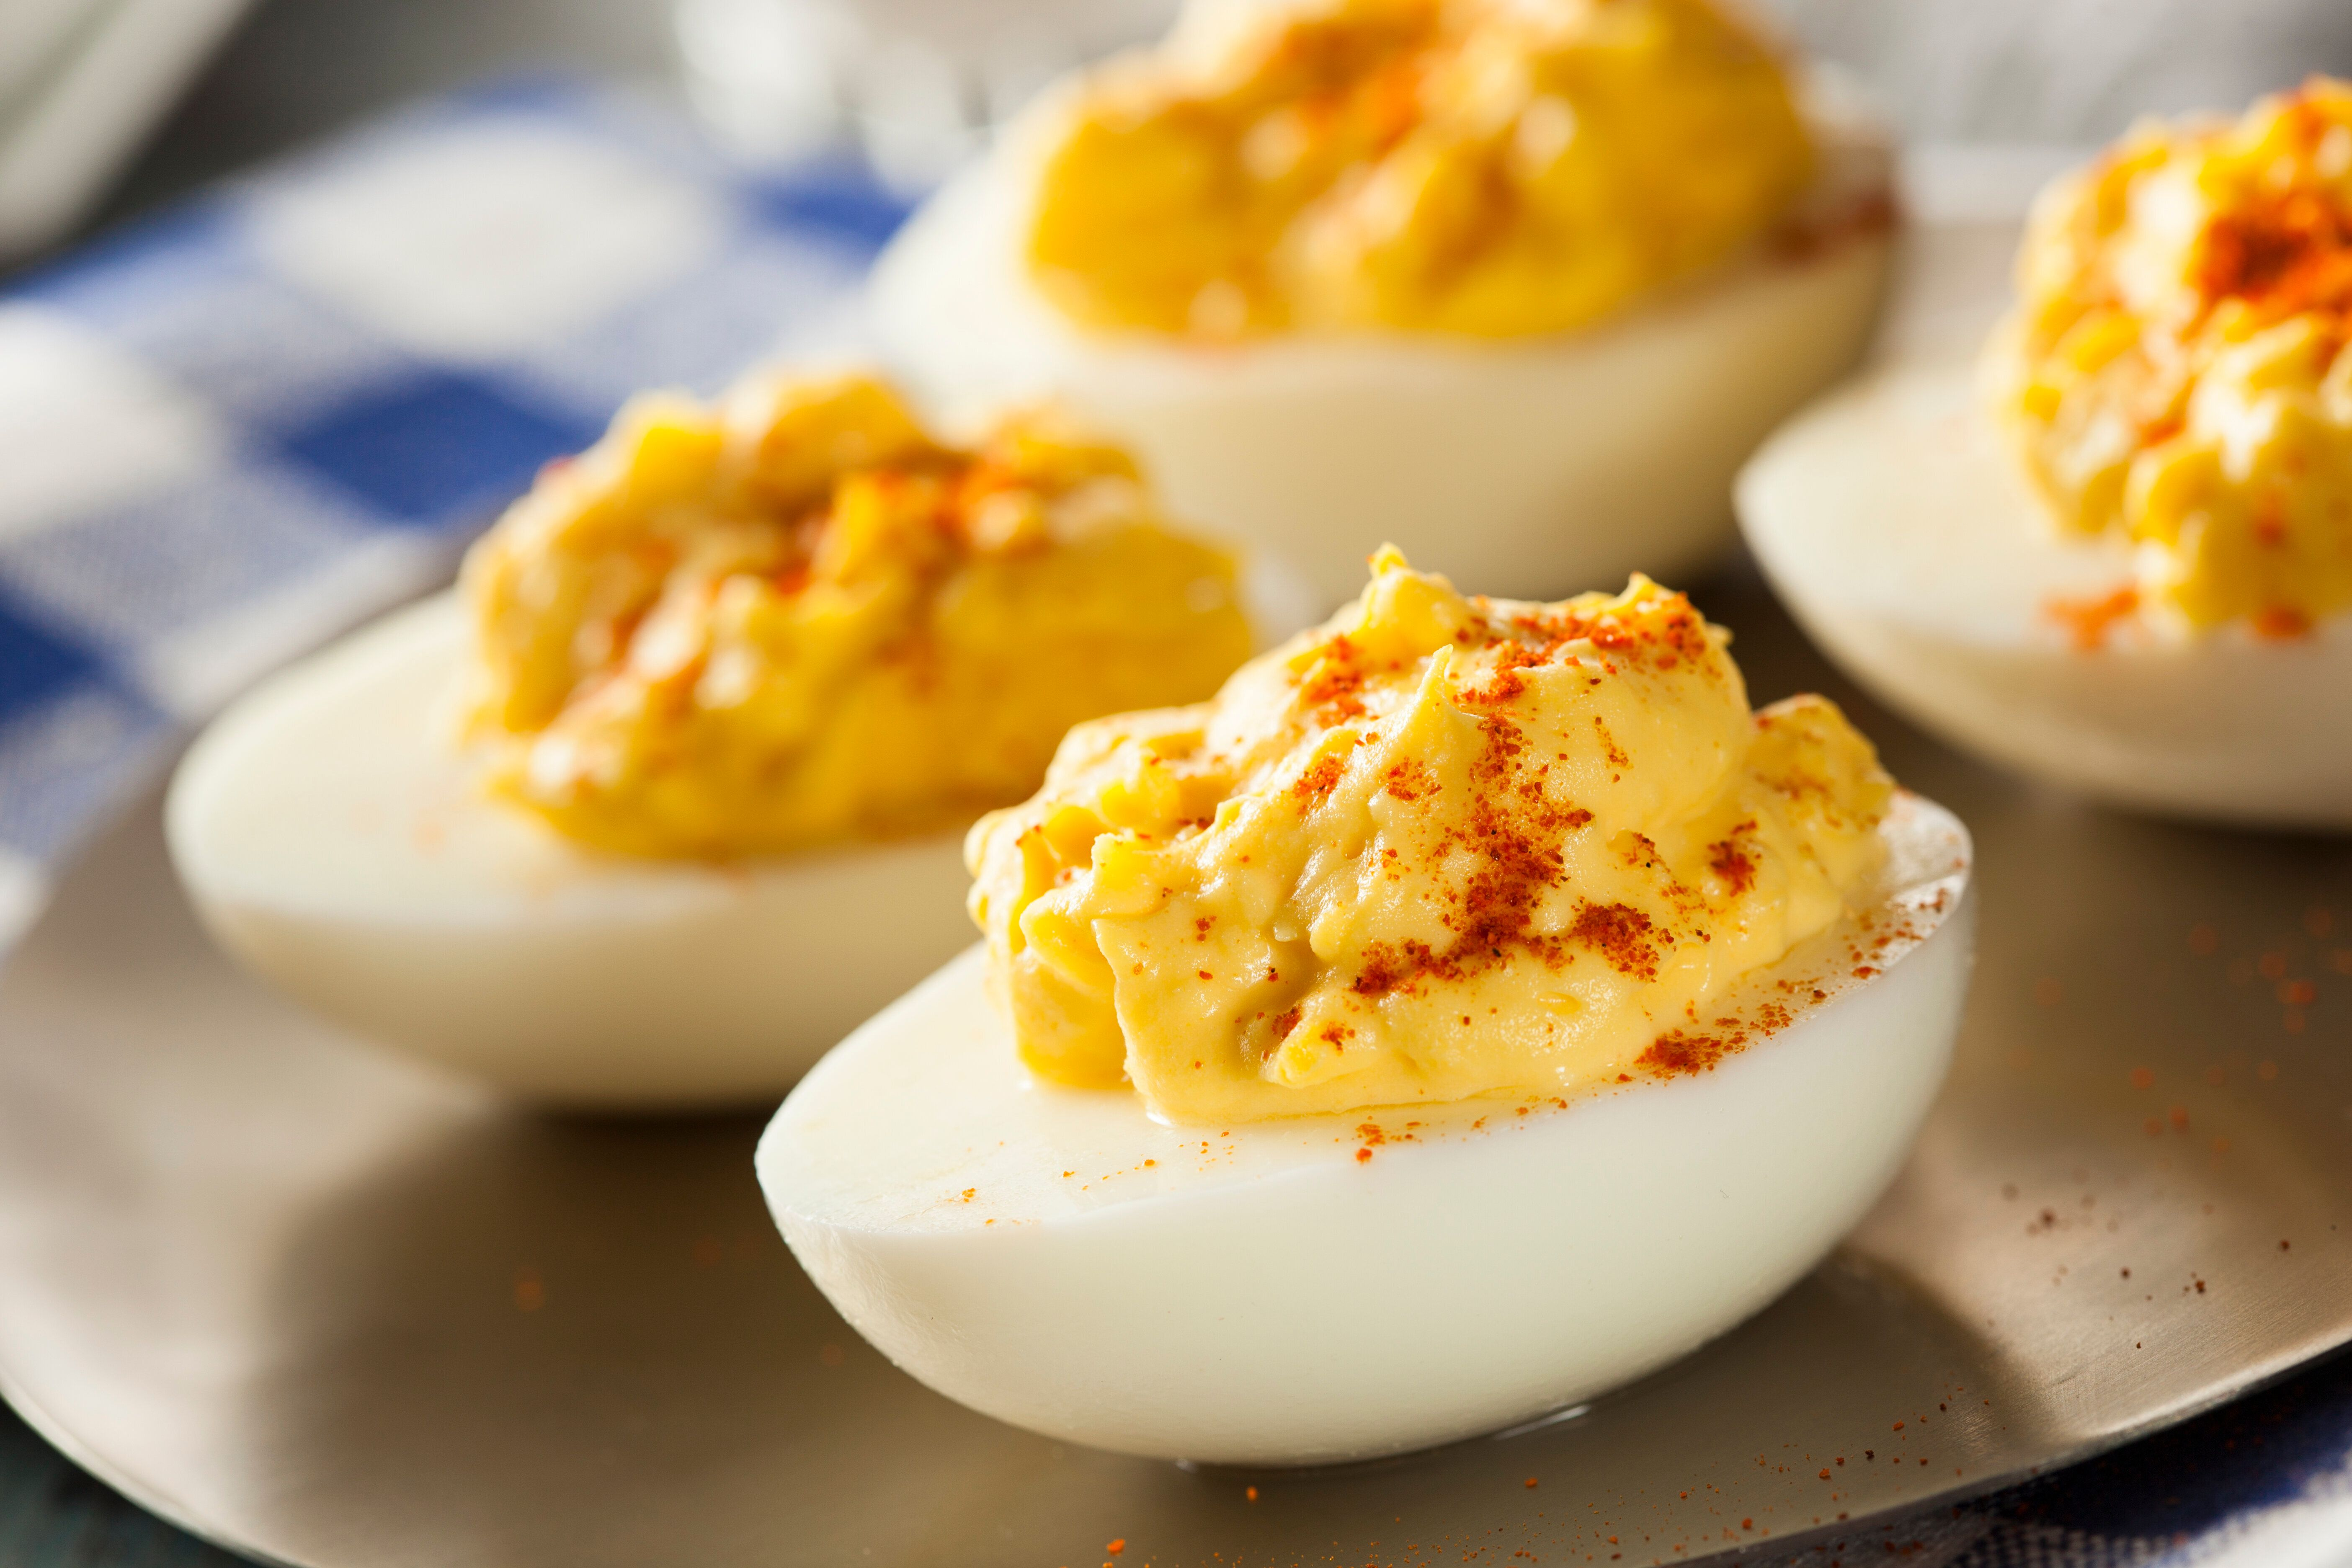 Don't let your deviled eggs sit out too long before you plan to serve them.